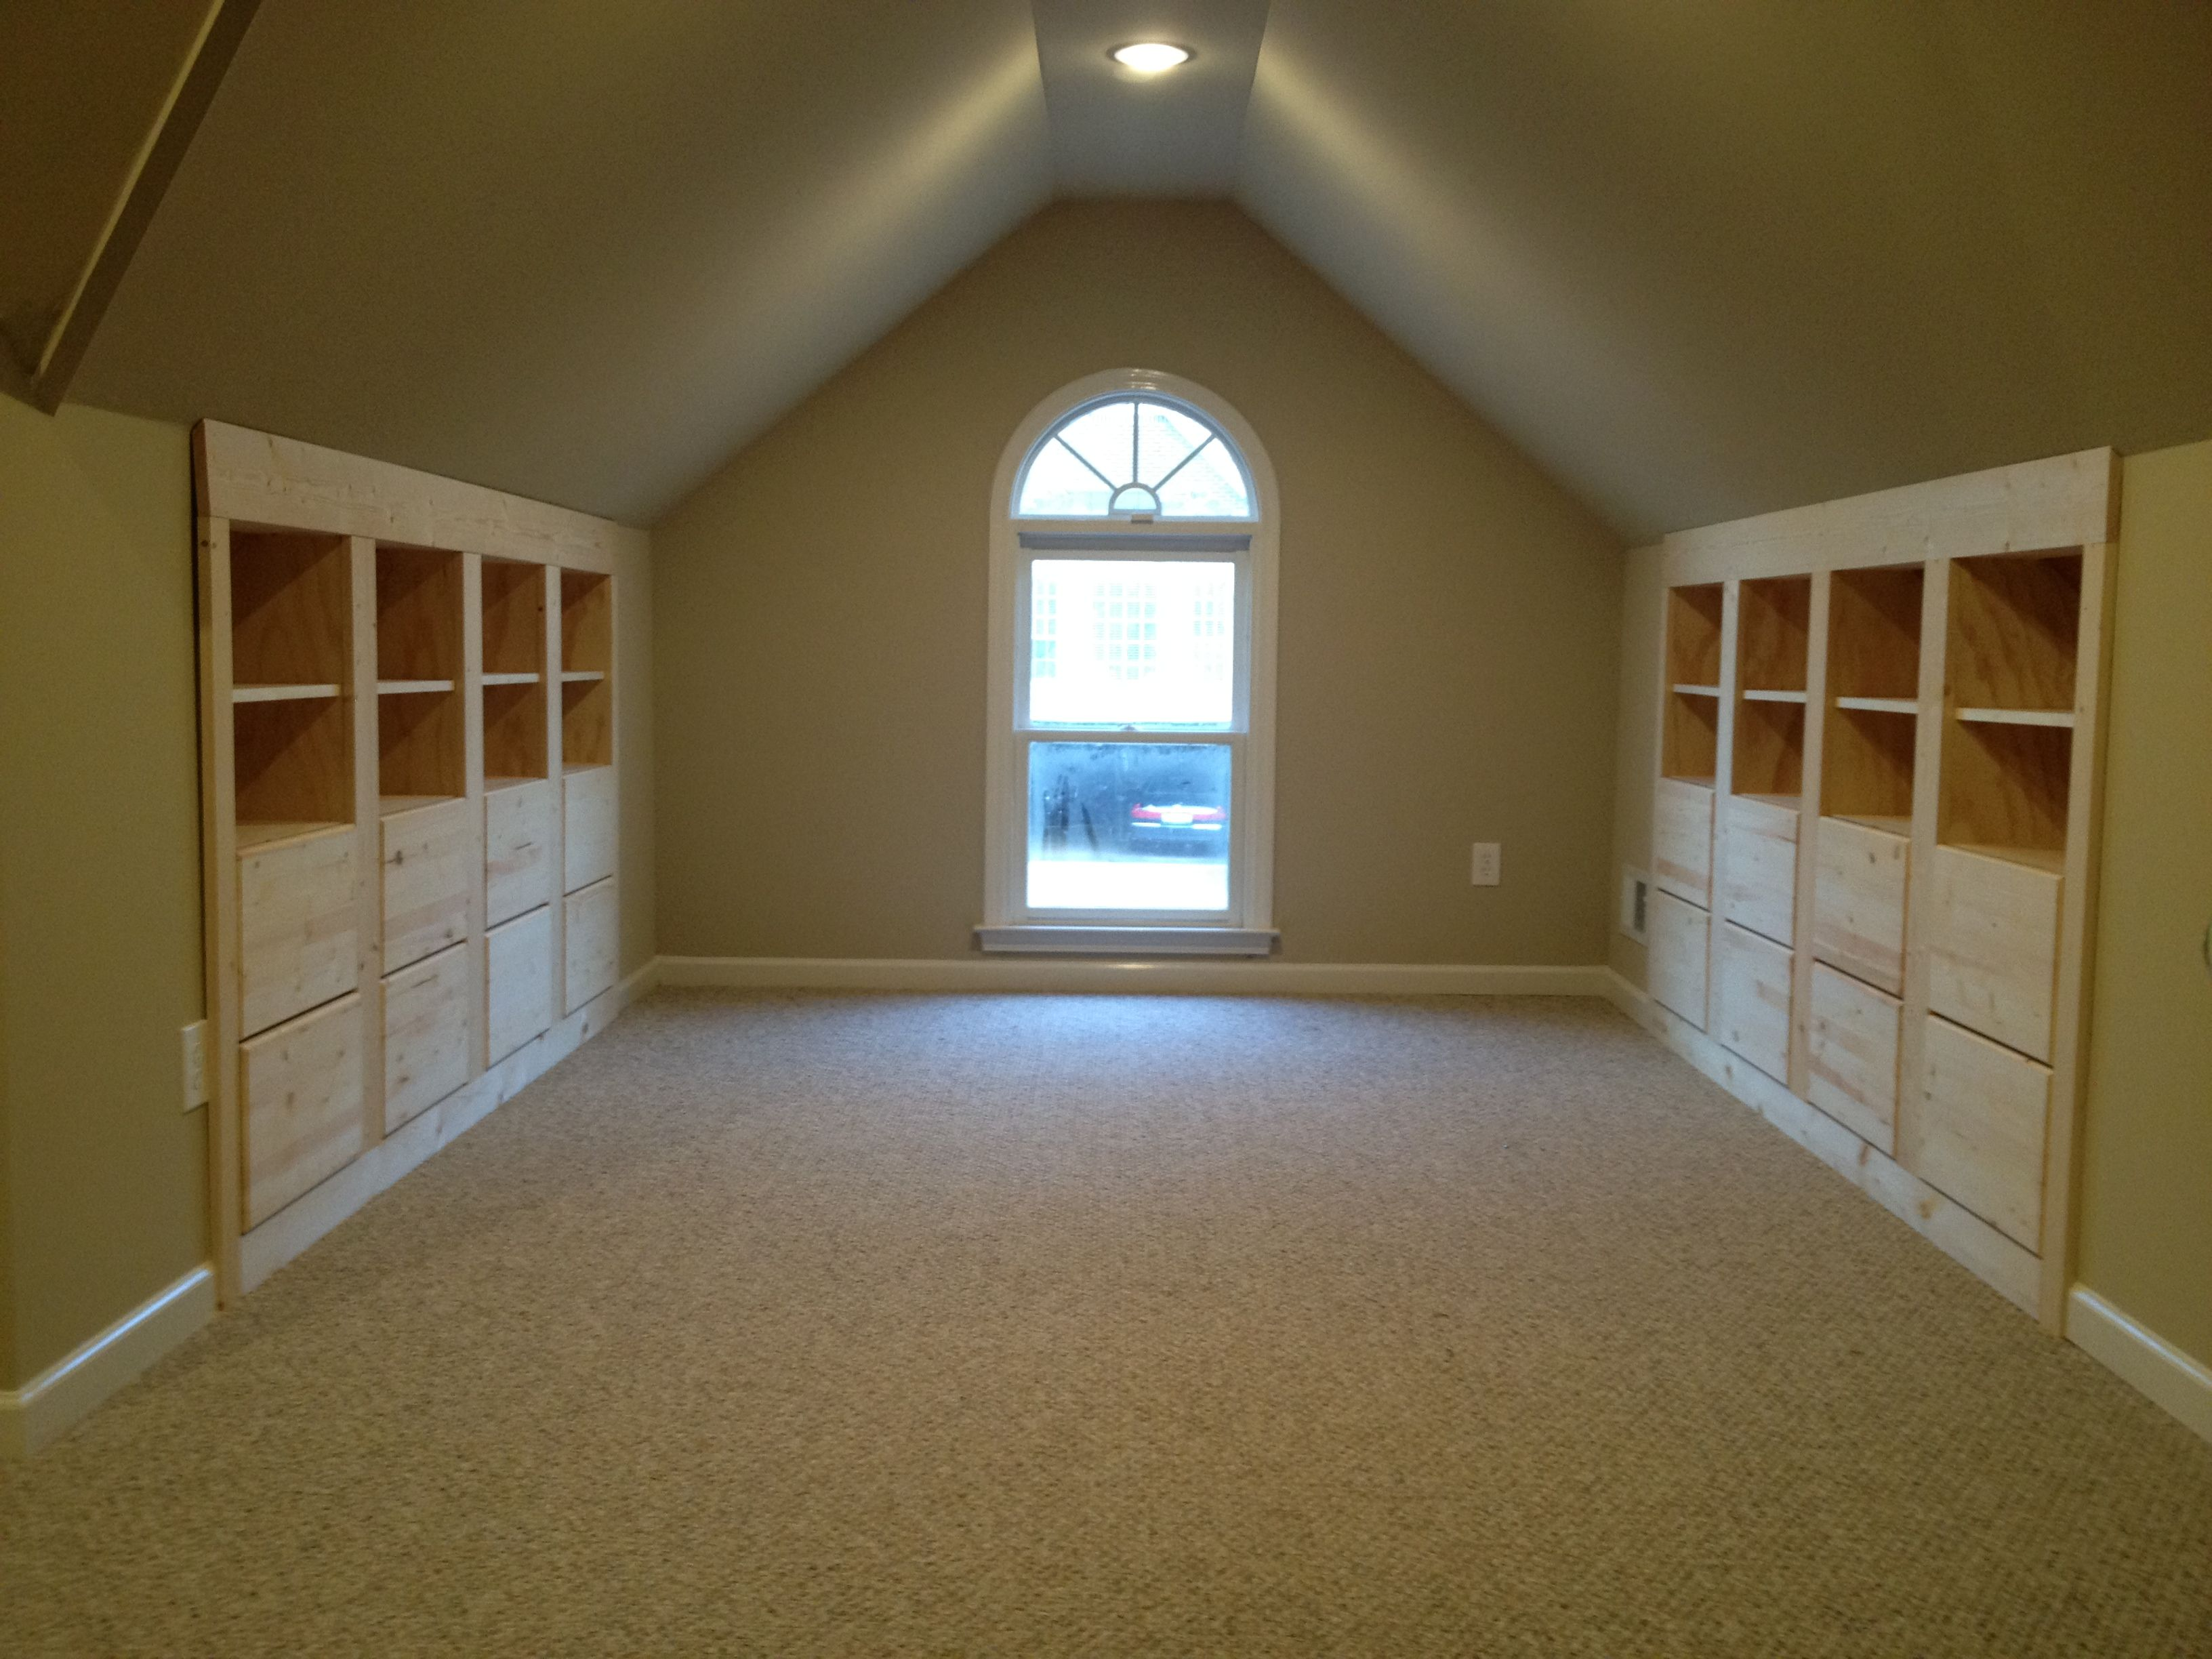 Pictures Of Finished Attics Attic Space Built In Storage This Looks Just Like How Our Space